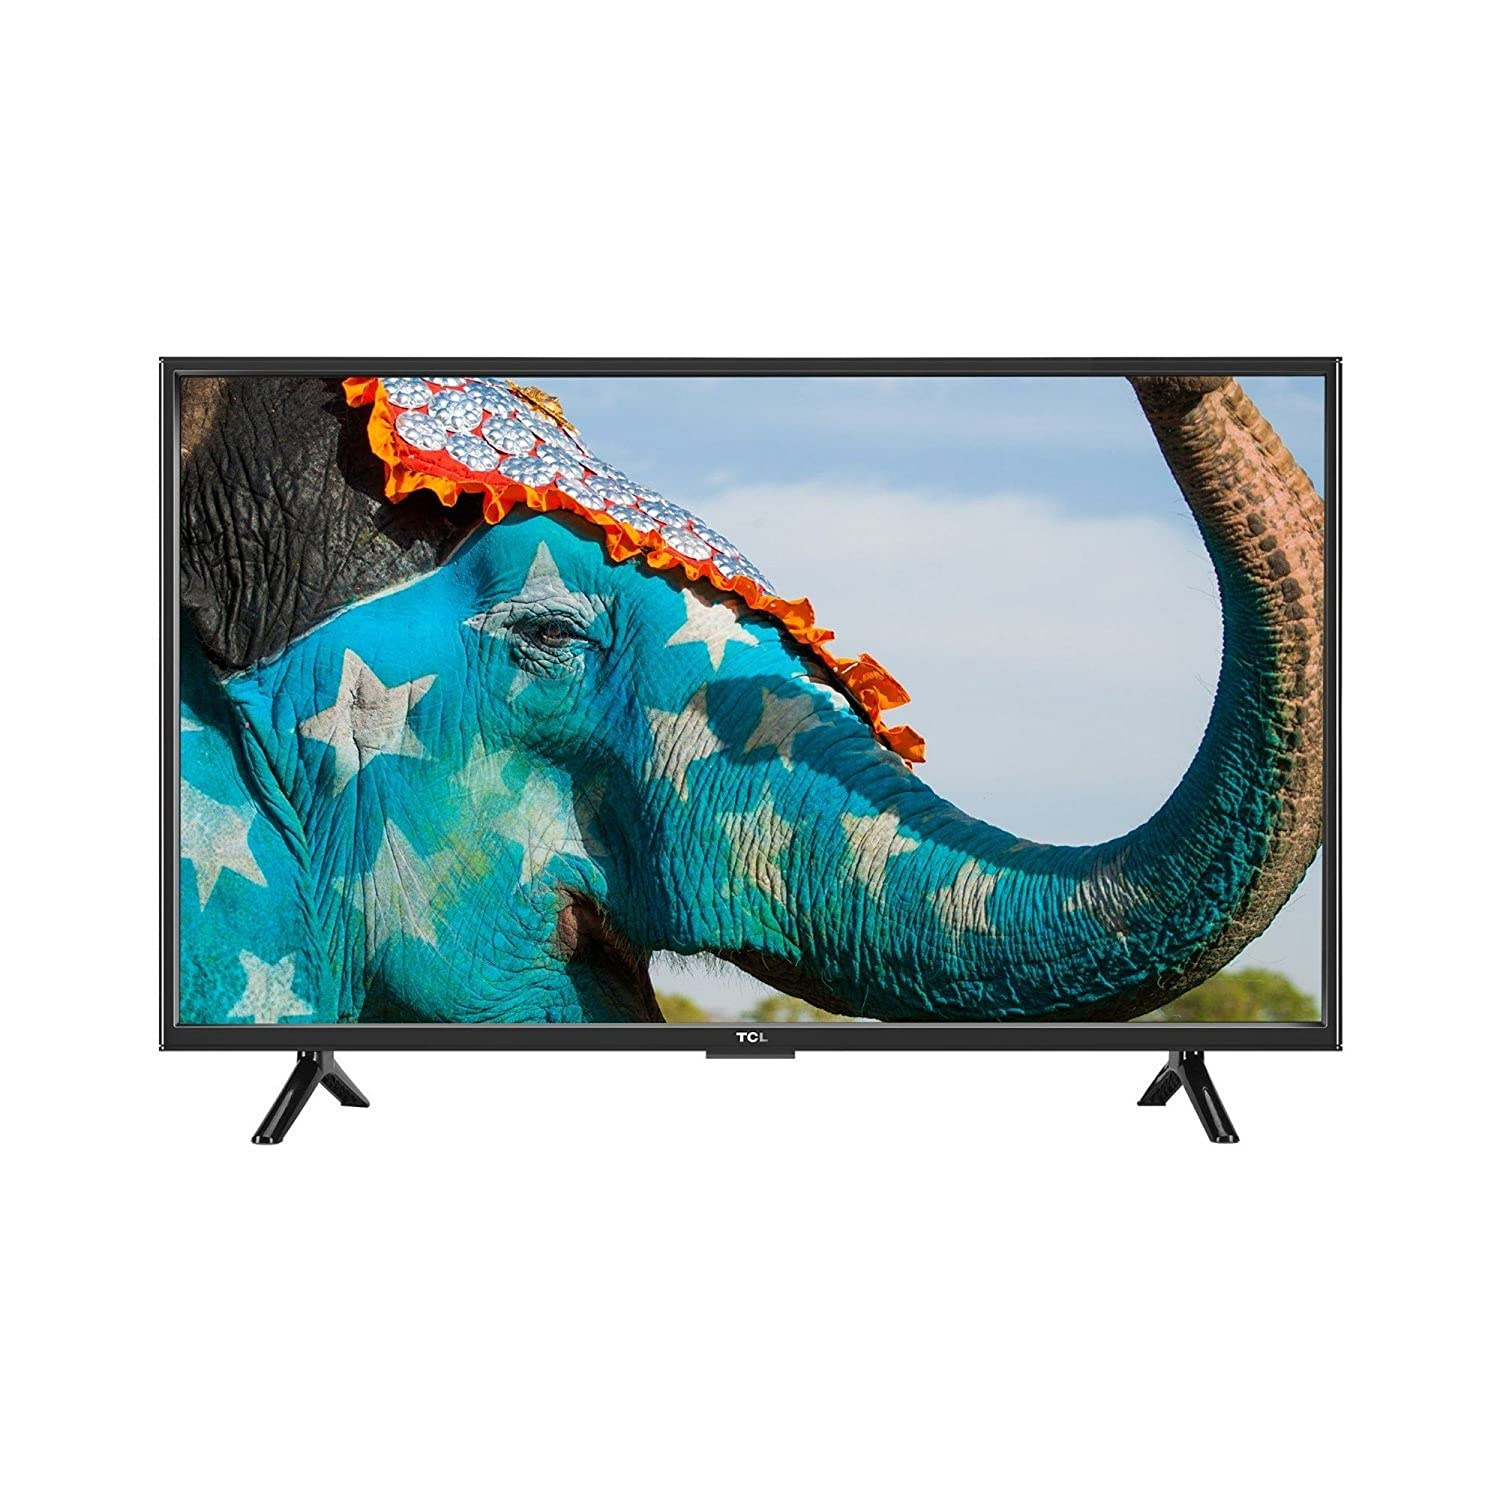 Deals on TCL 99.1 cm (39 inches) L39D2900 Full HD LED TV (Black)